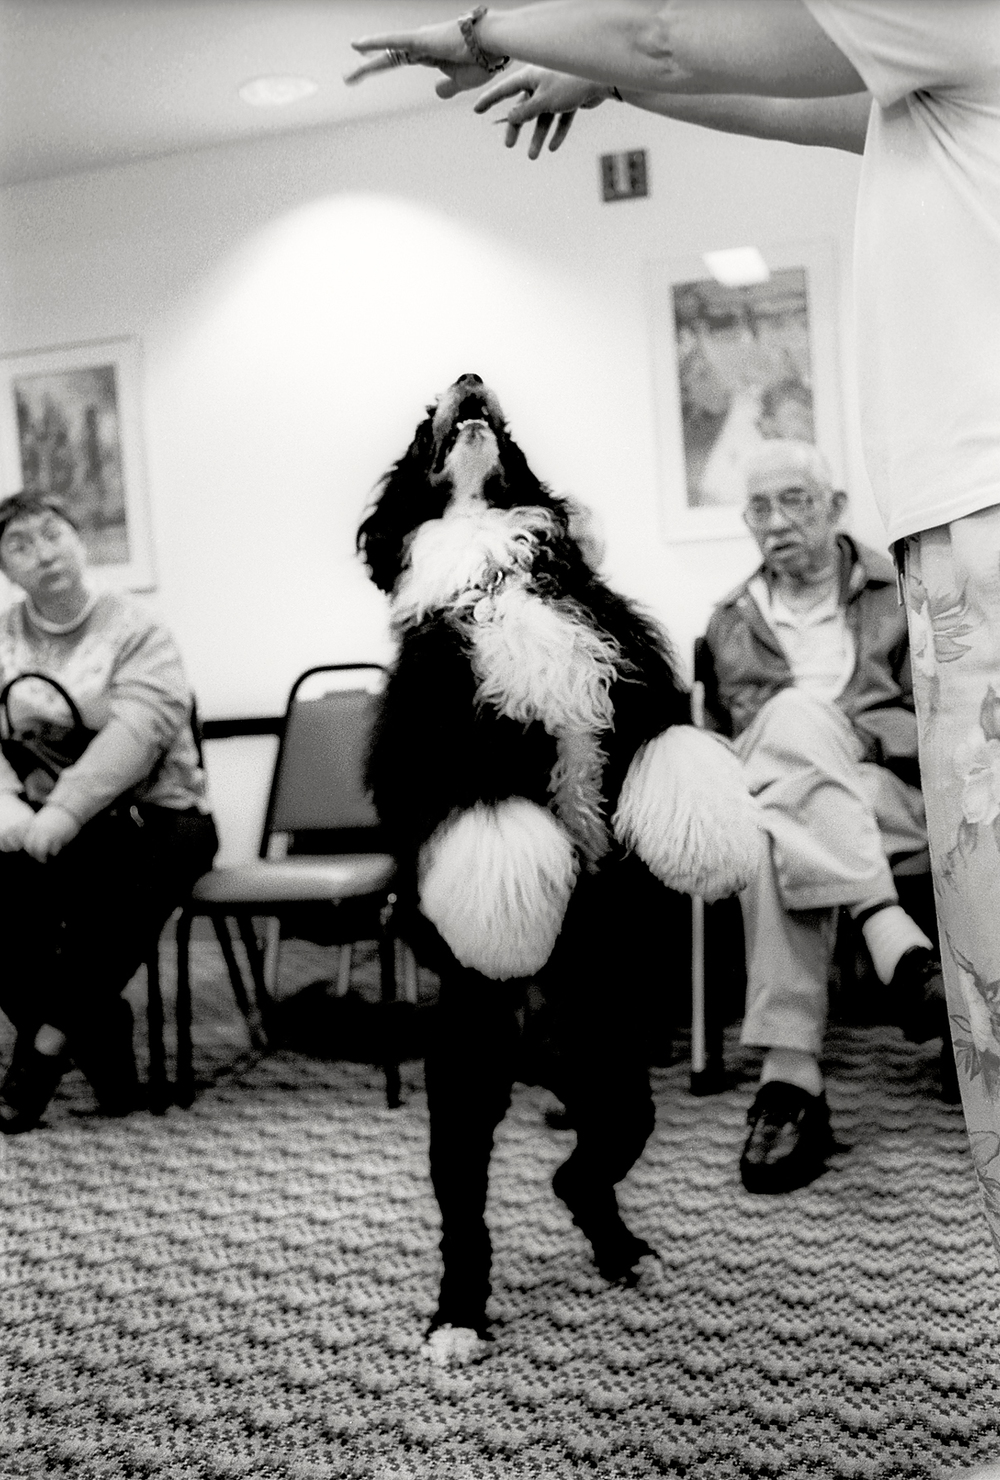 Sirius Fun Animal Therapy dog performs at retirement home